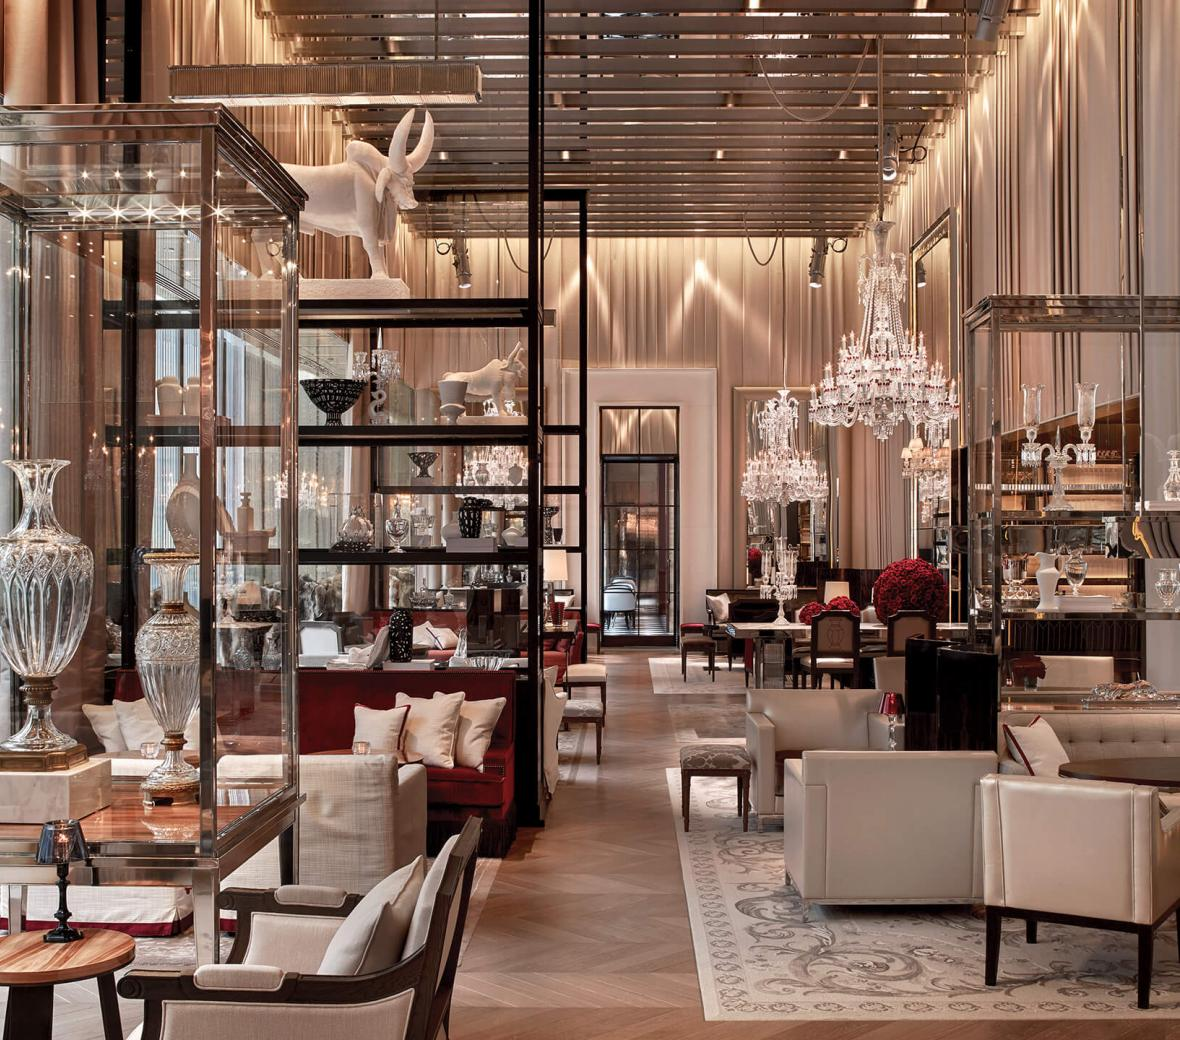 Heart Of Gold Inspiring Interiors Elegant In Manhattan Manhattan Interiors Luxury Hotel In Manhattan, Nyc | Baccarat Hotel